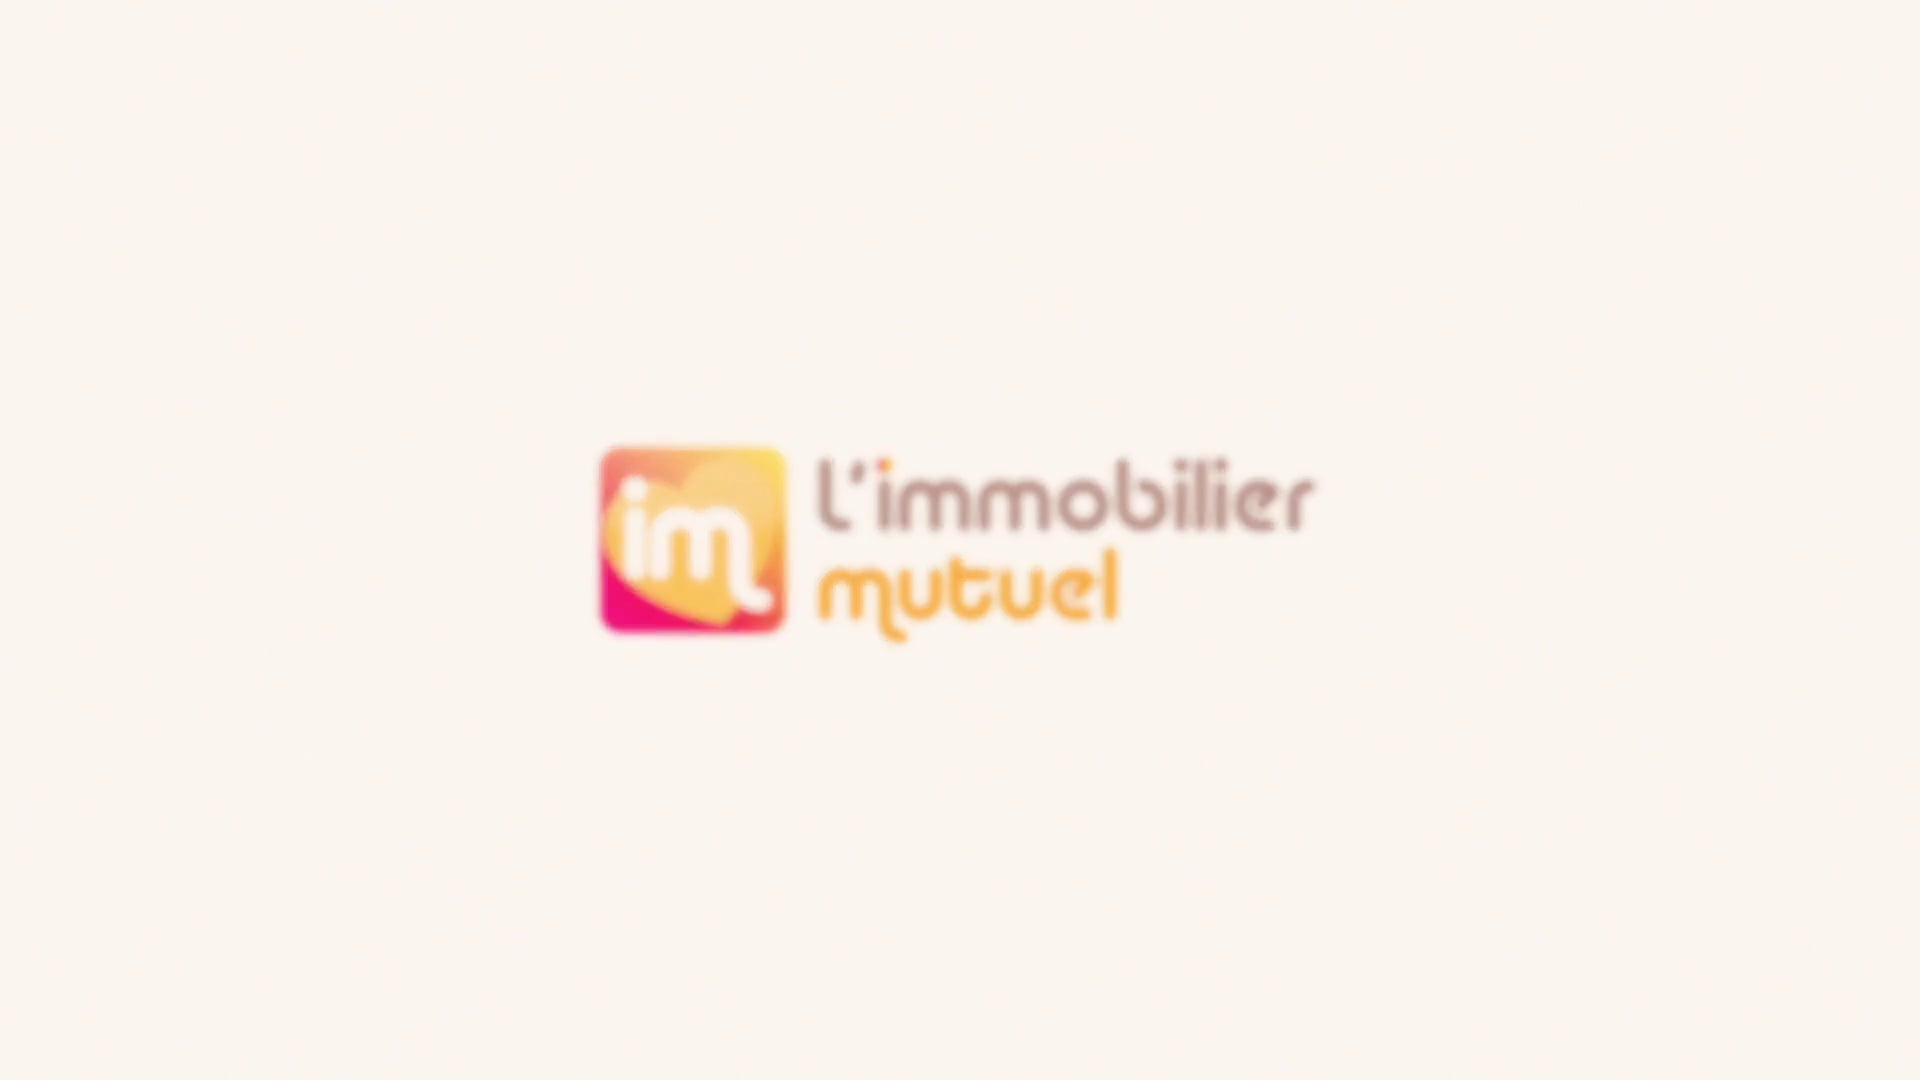 Immobilier Mutuel - Campagne n°2